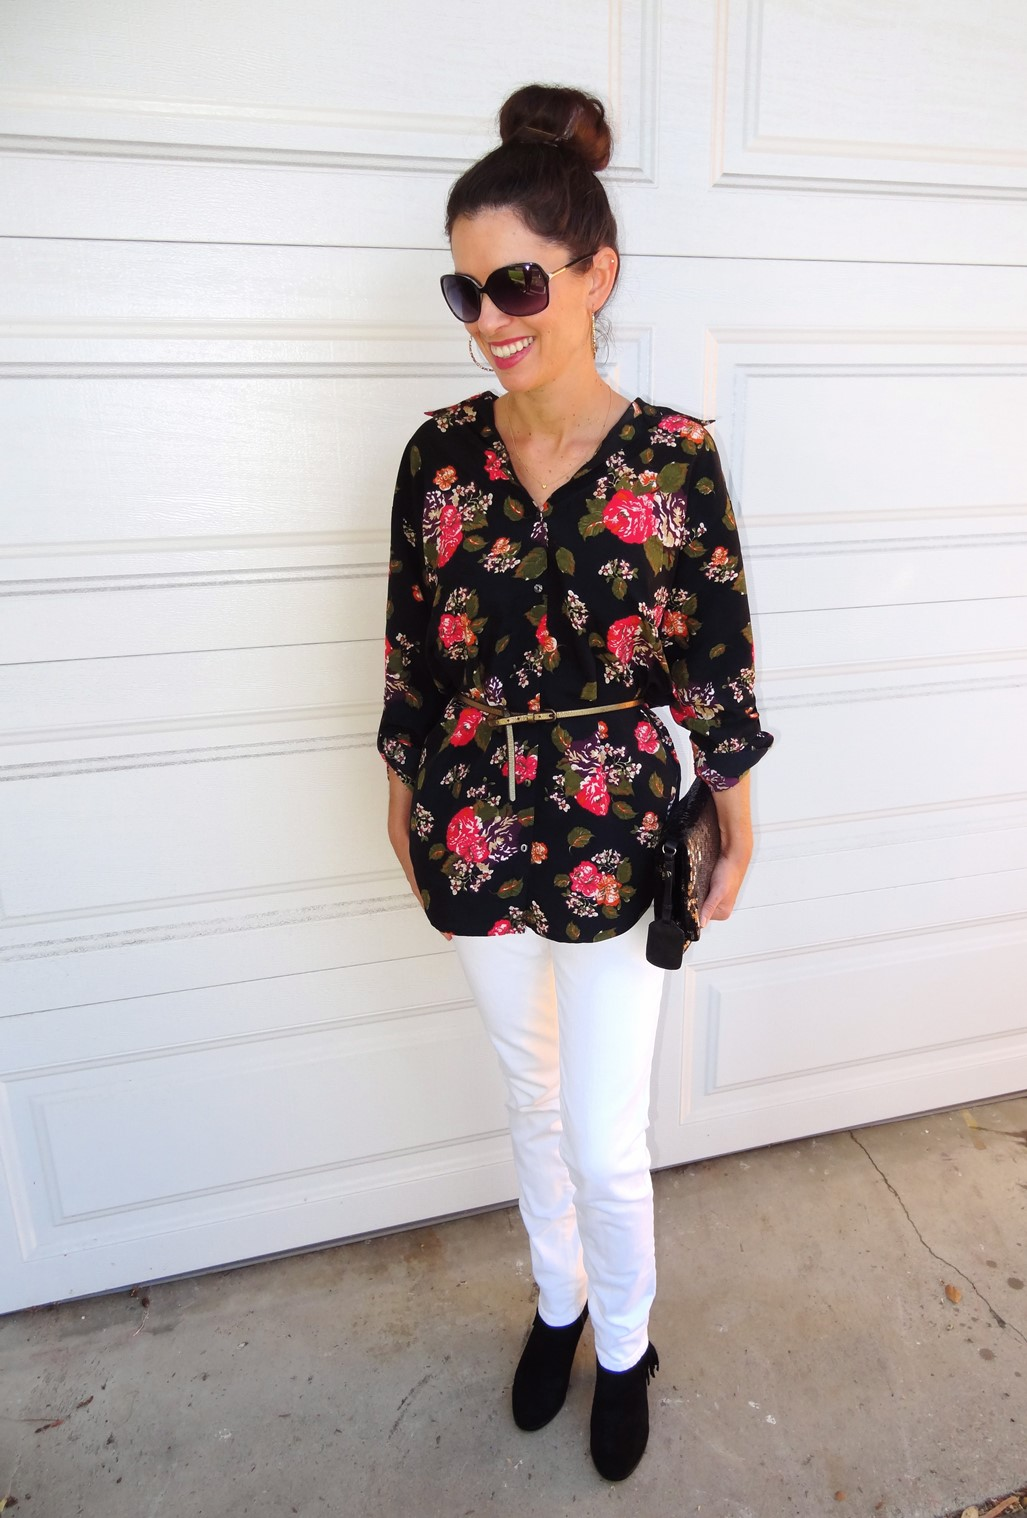 2. Wear of the Week White Pants and Floral